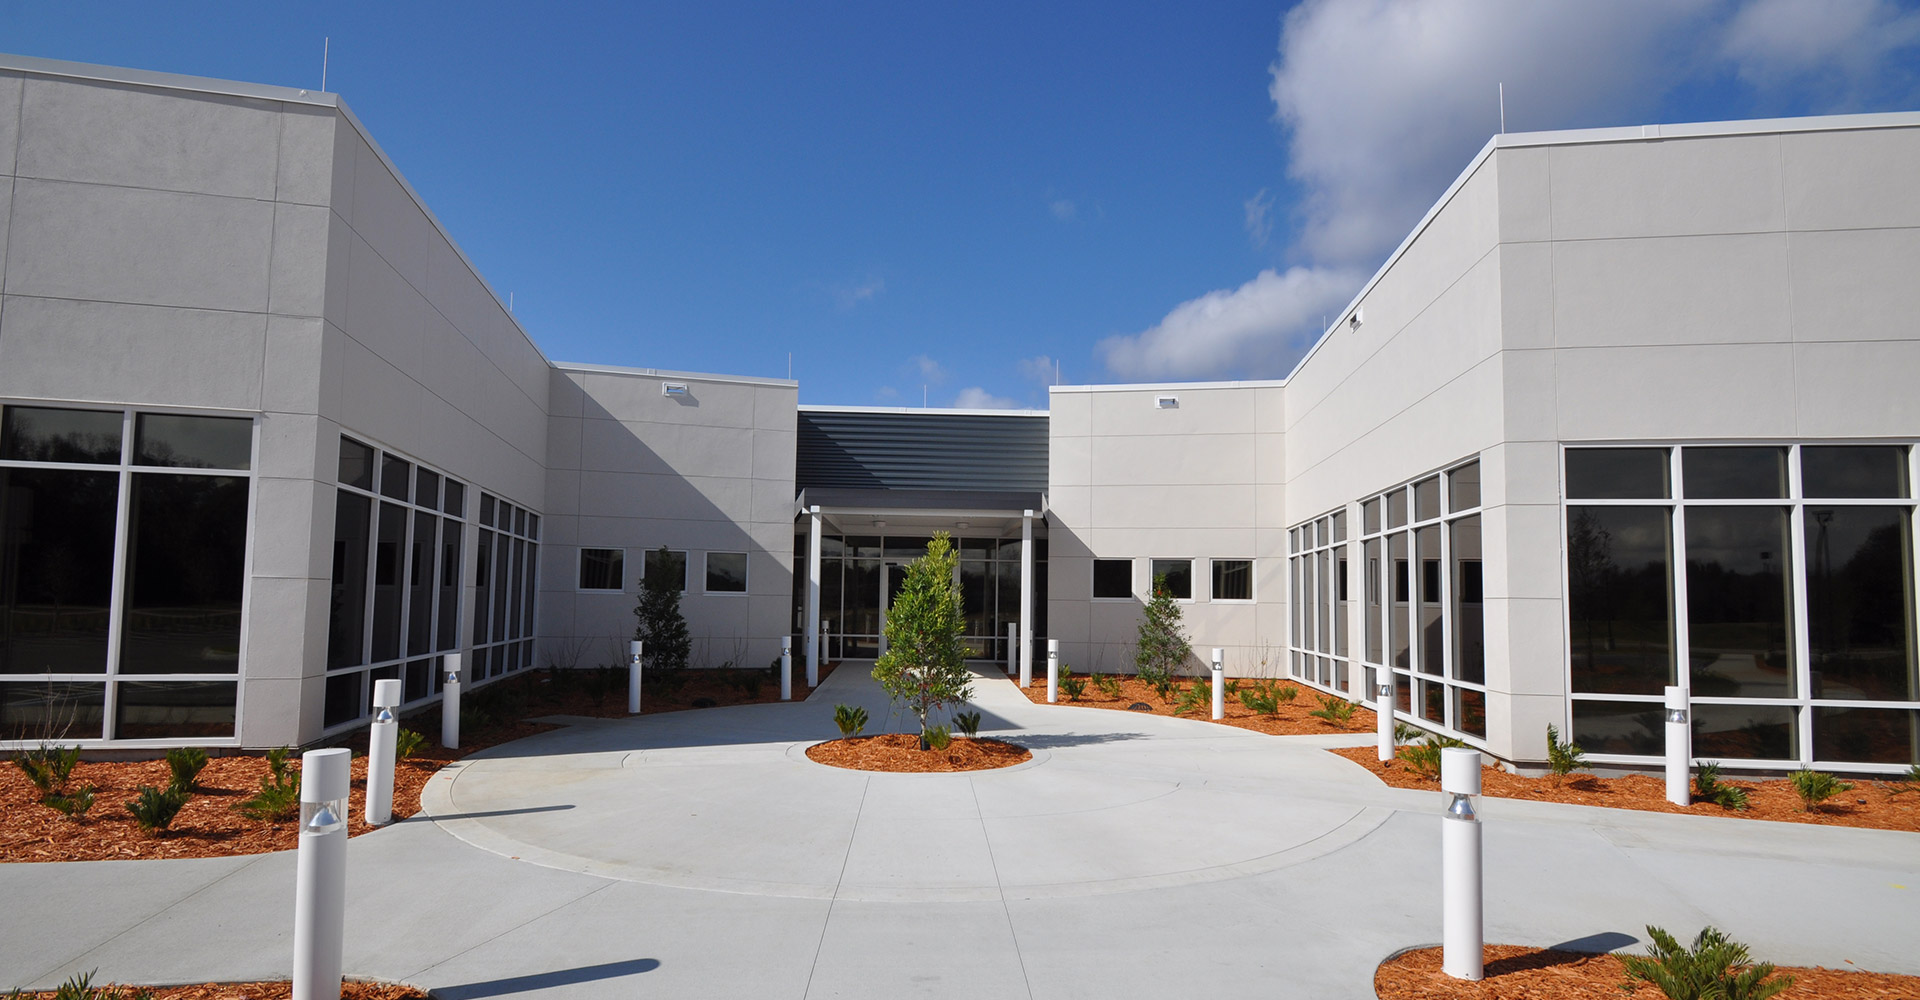 RTI Facility Exterior Entrance.